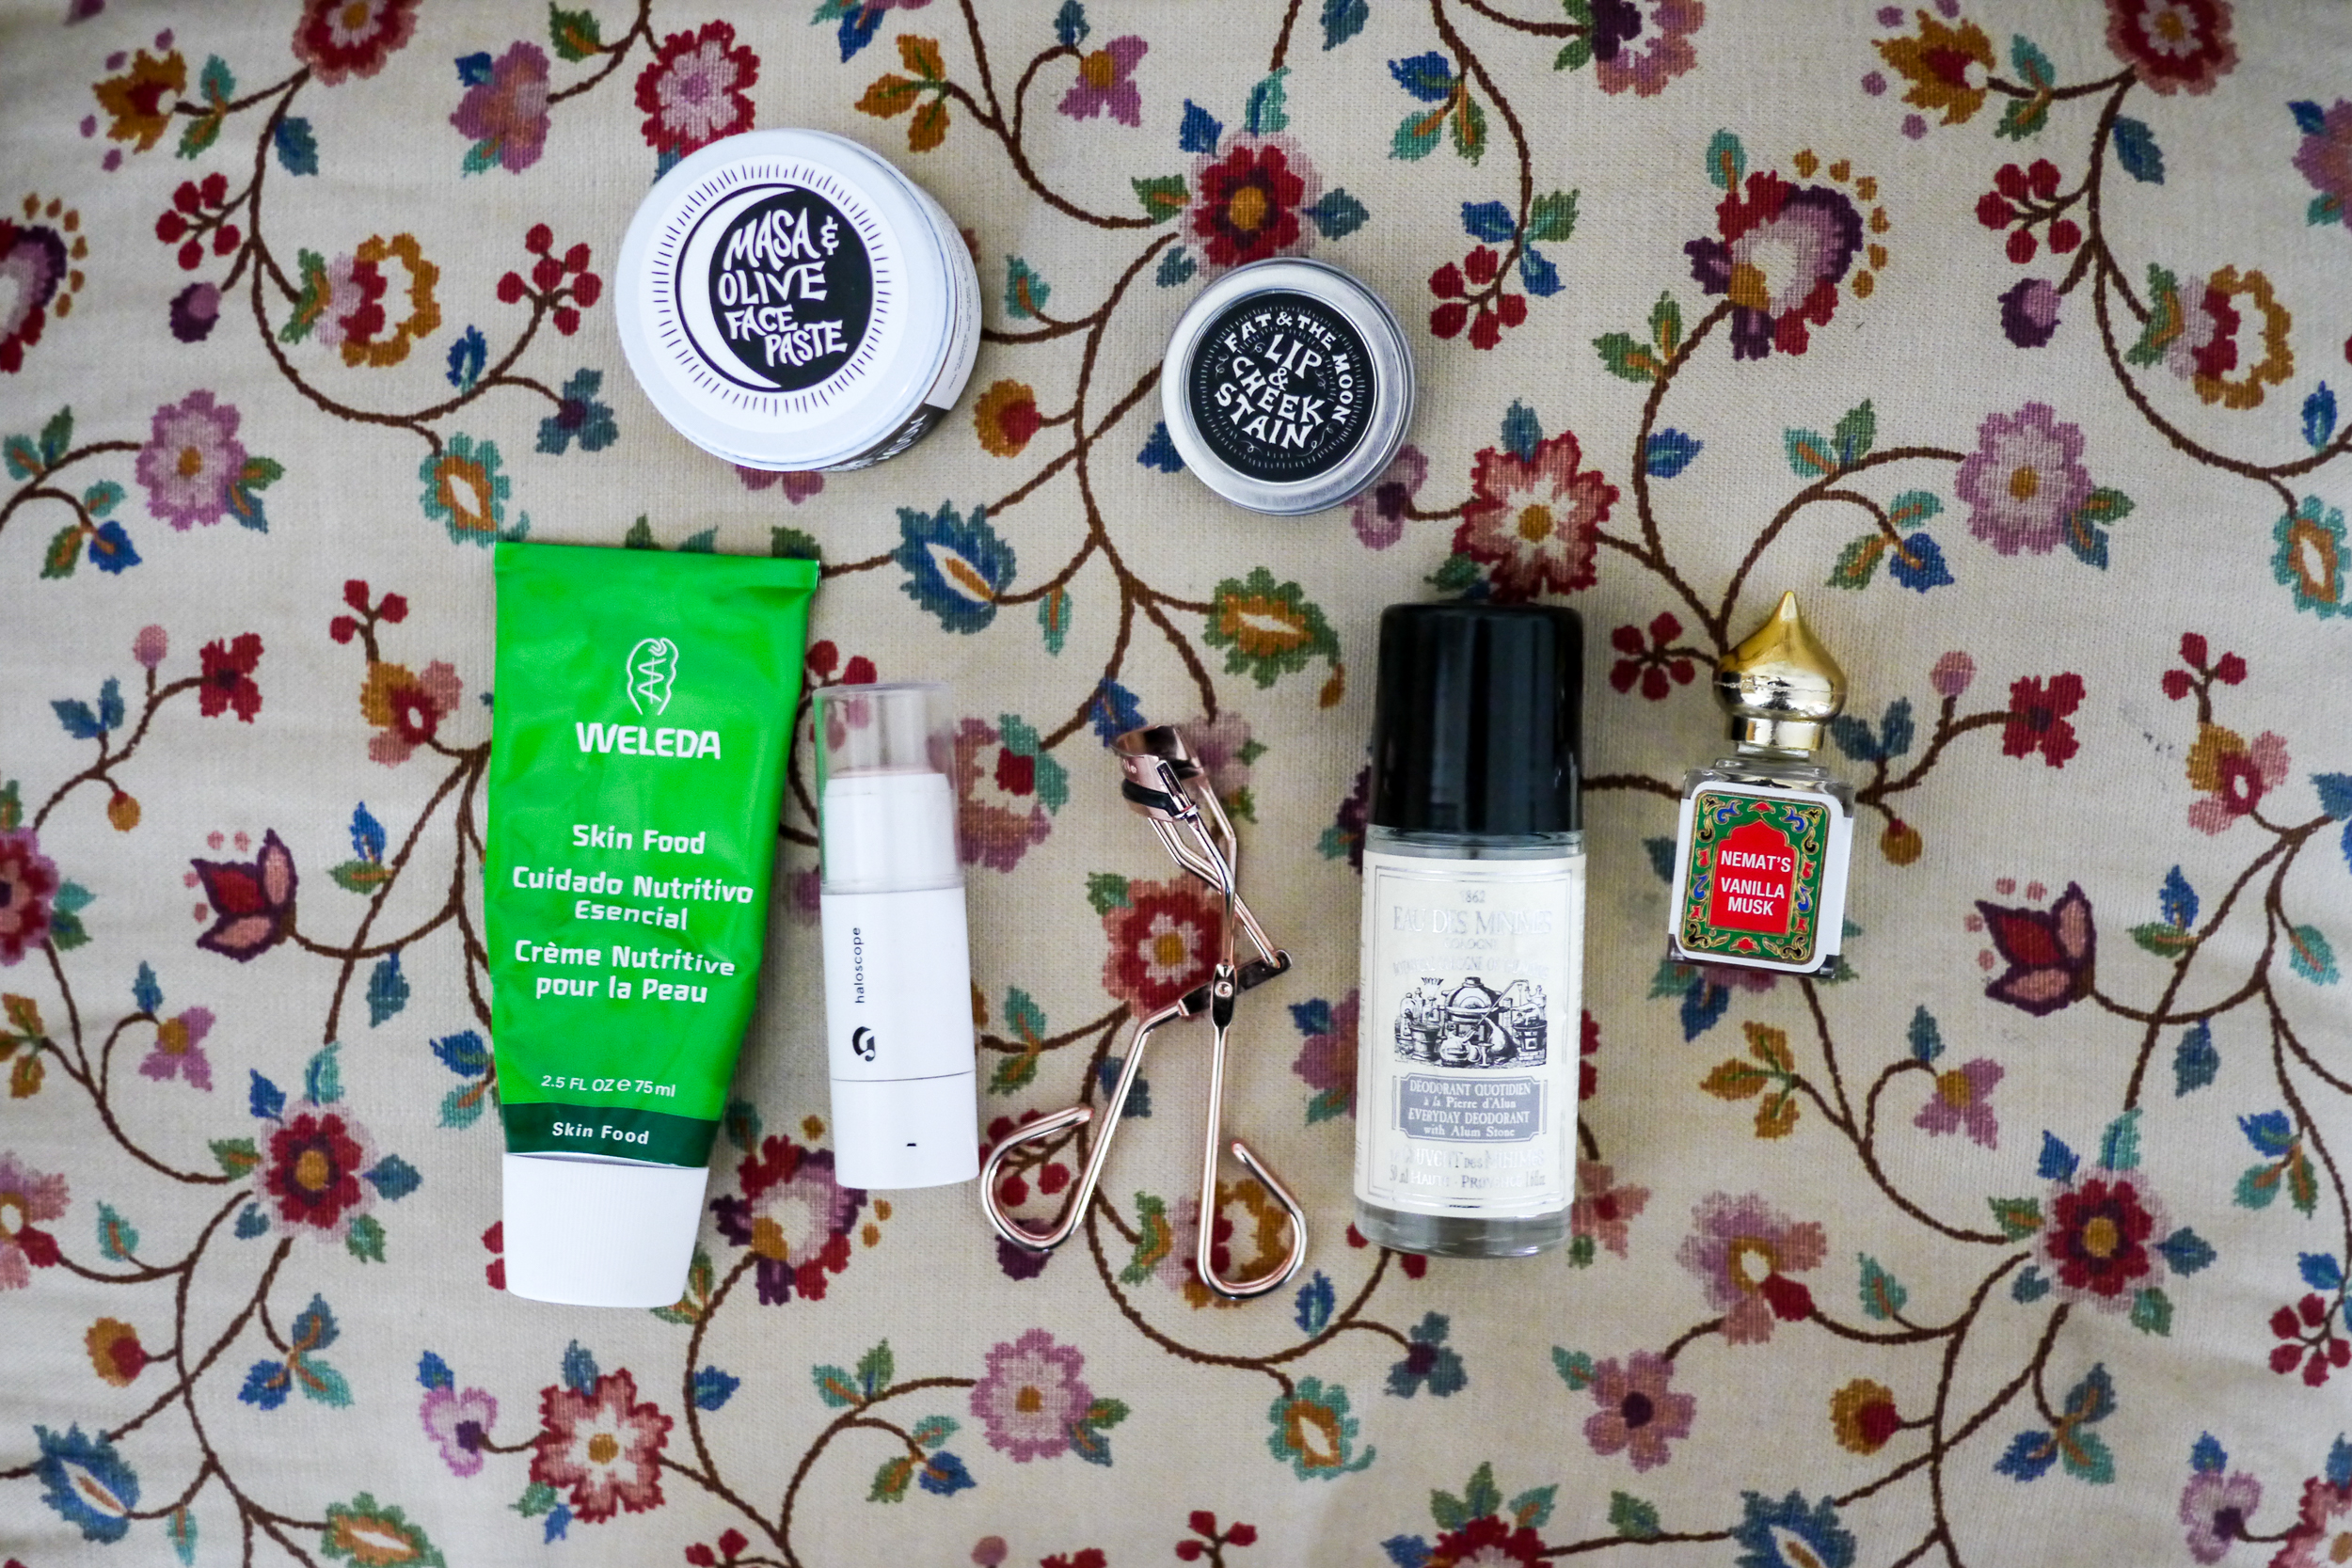 Holly's favorite beauty products